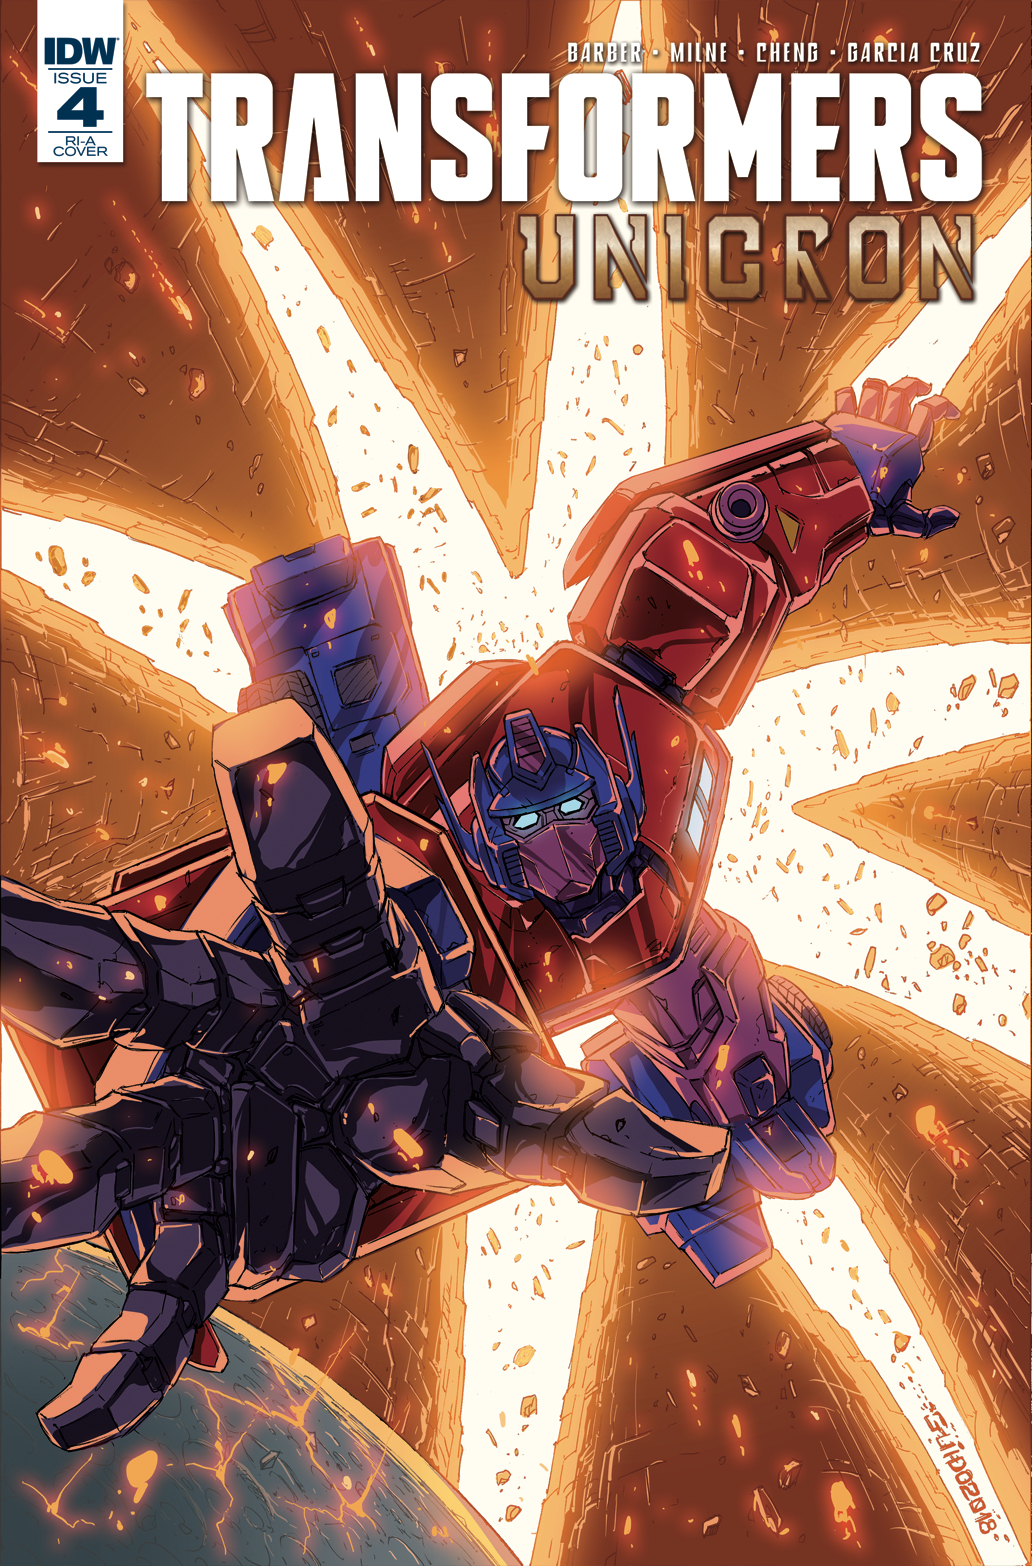 Transformers: Unicron #4 Retailer Incentive Cover A and B ...